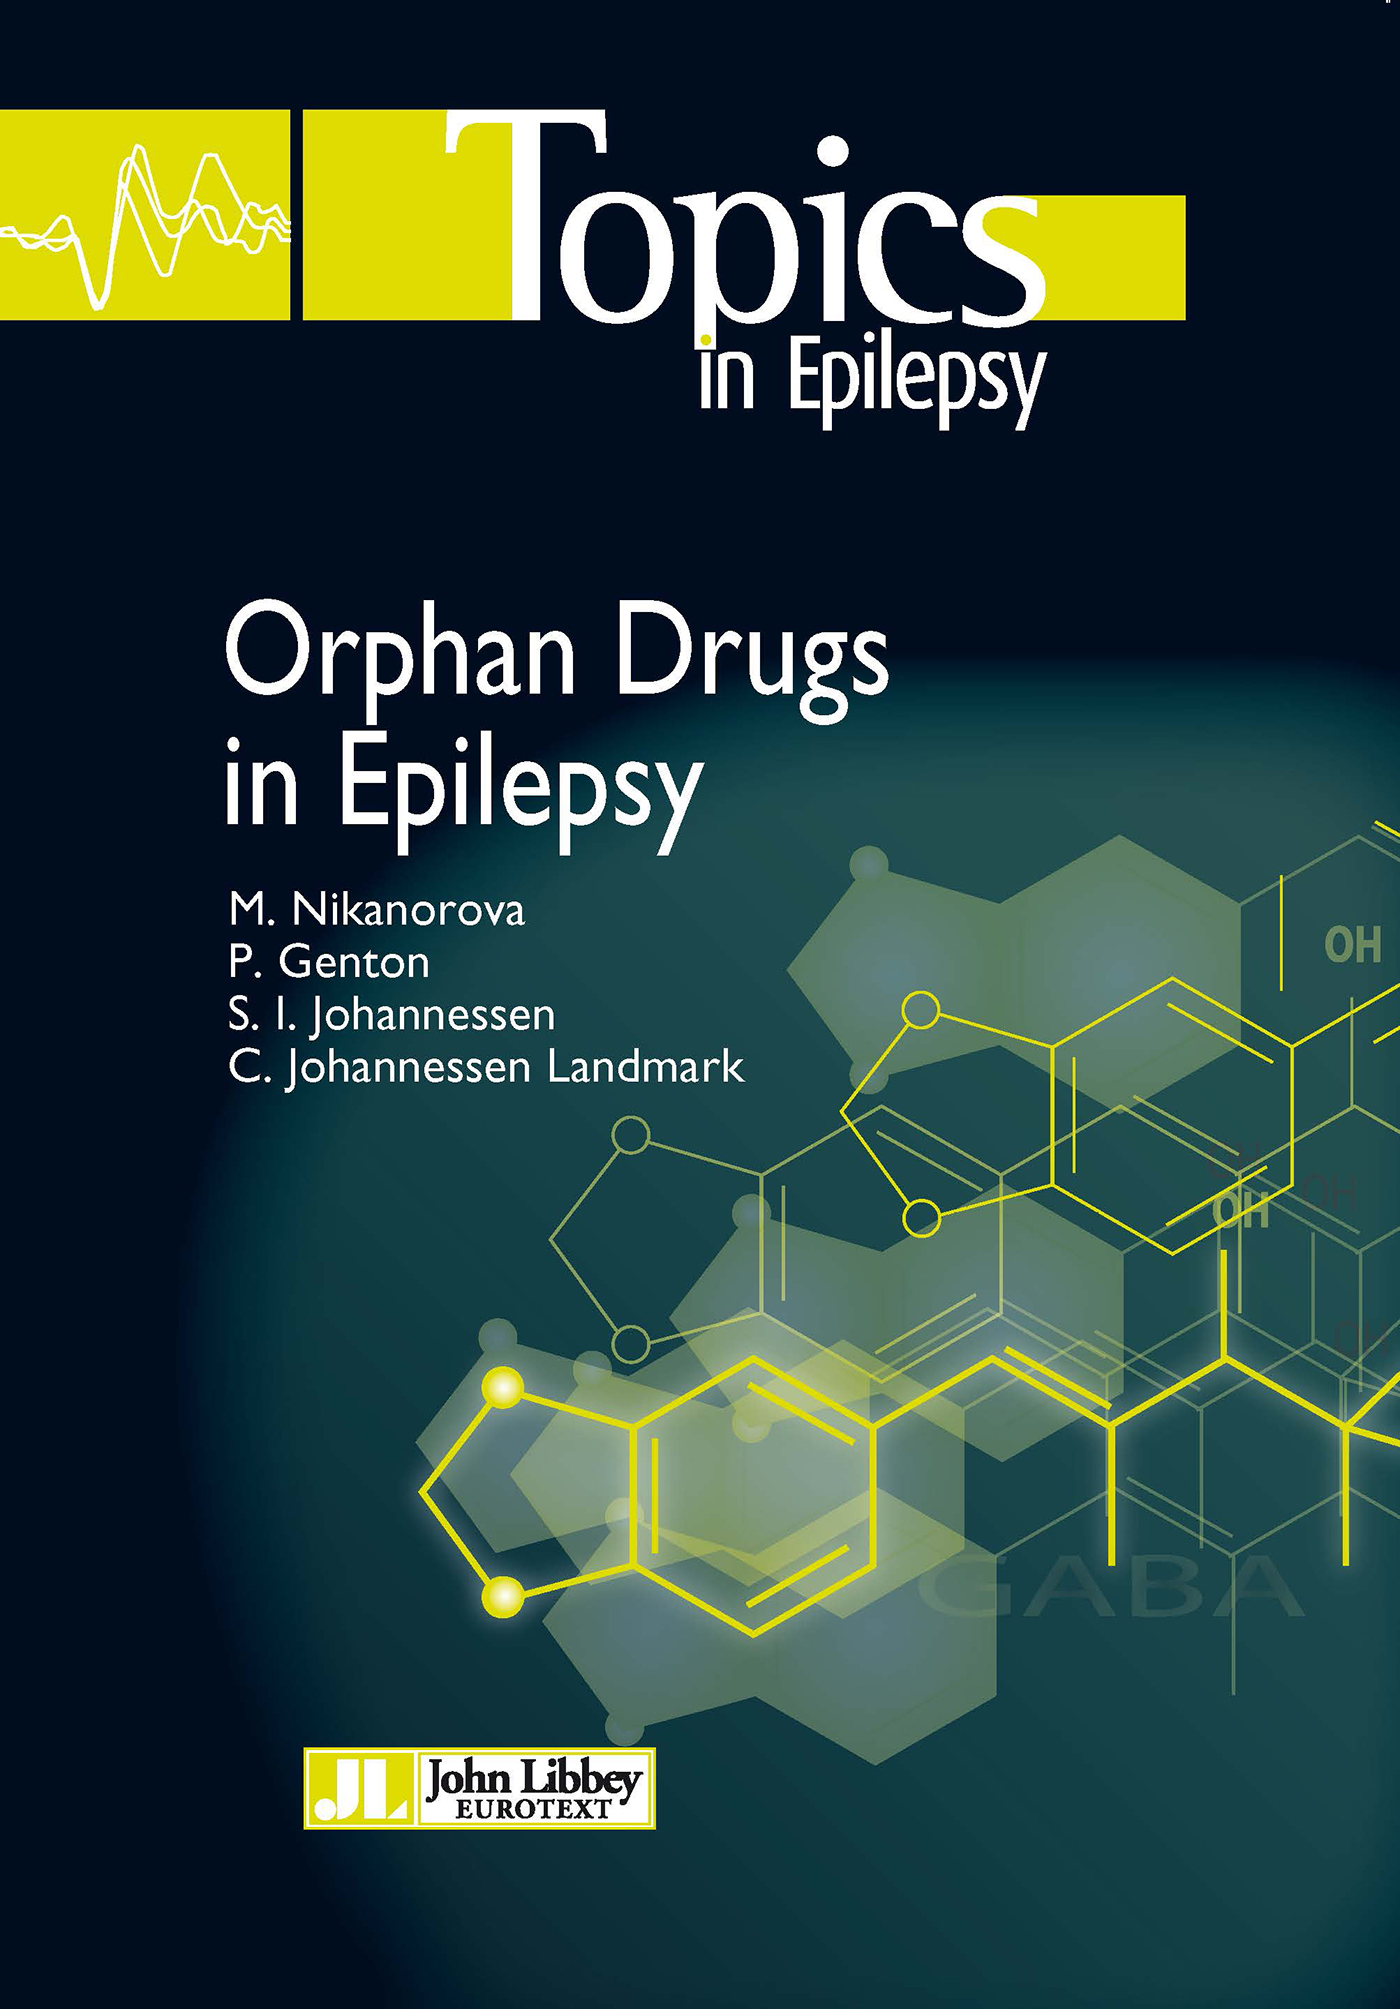 Orphan Drugs in Epilepsy